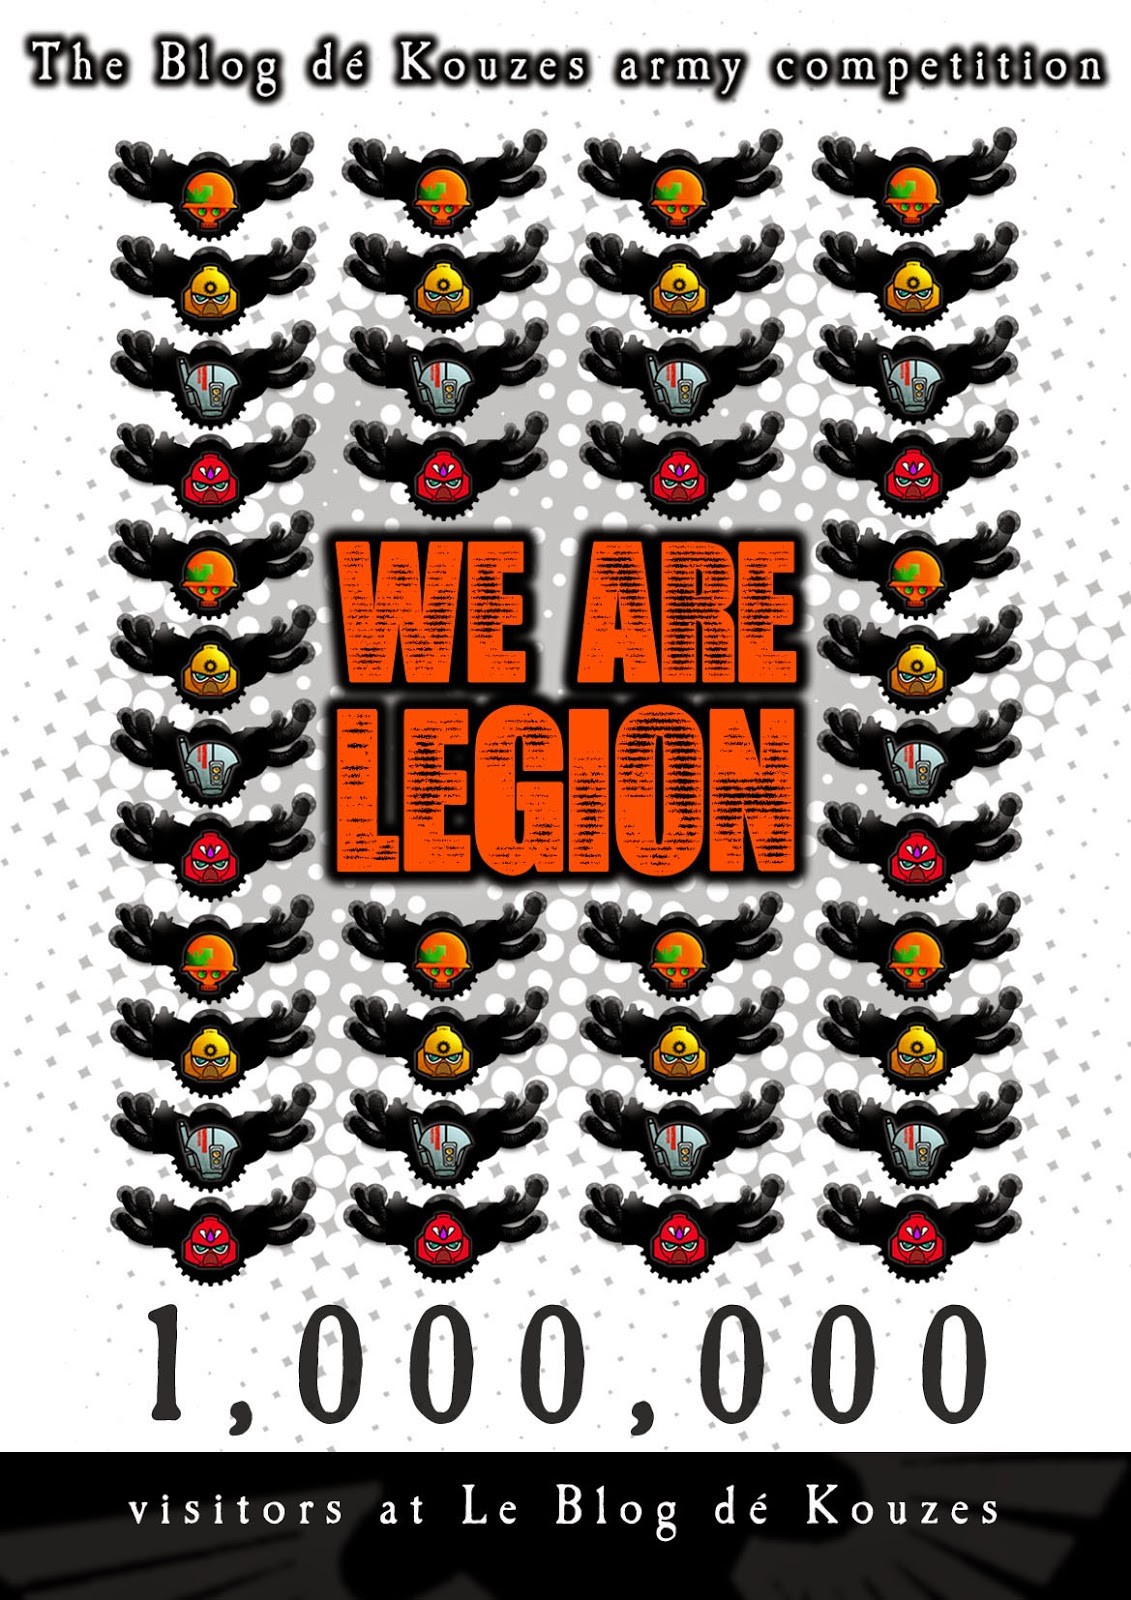 http://leskouzes.blogspot.co.uk/2014/10/1-000-000-we-are-legion.html